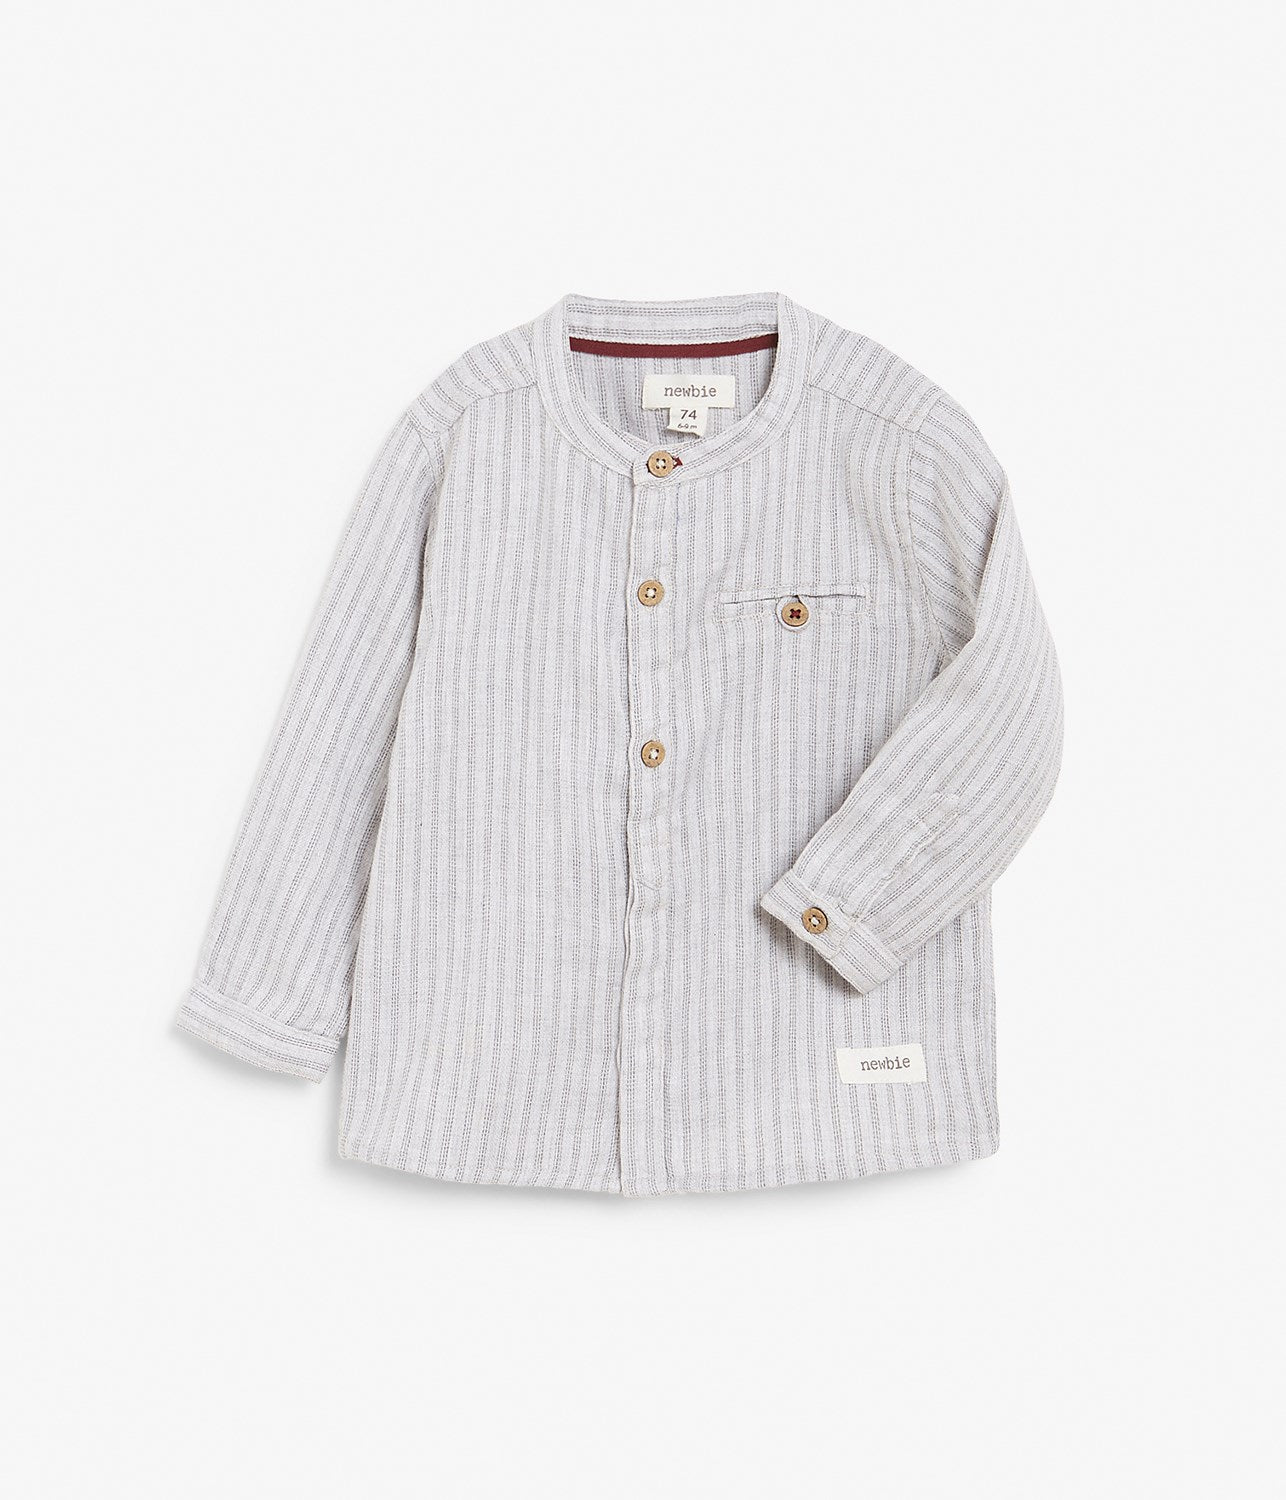 Baby grey stripe button up shirt